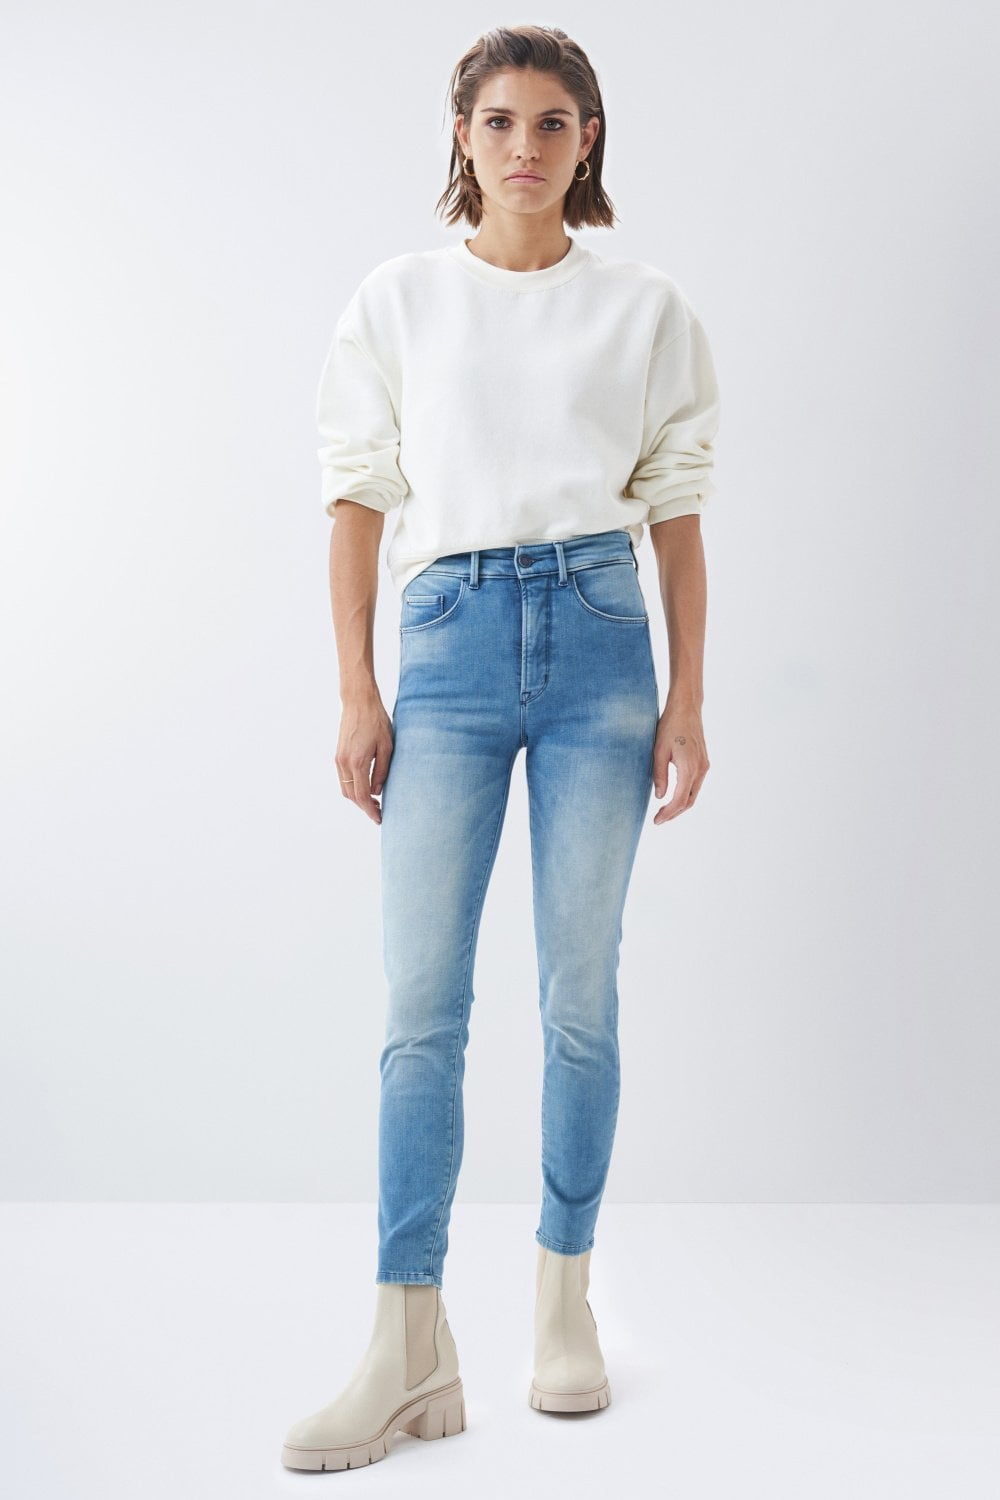 Jeans Secret Glamour, Push In, Caprihose, in gewaschenem Denim - Salsa